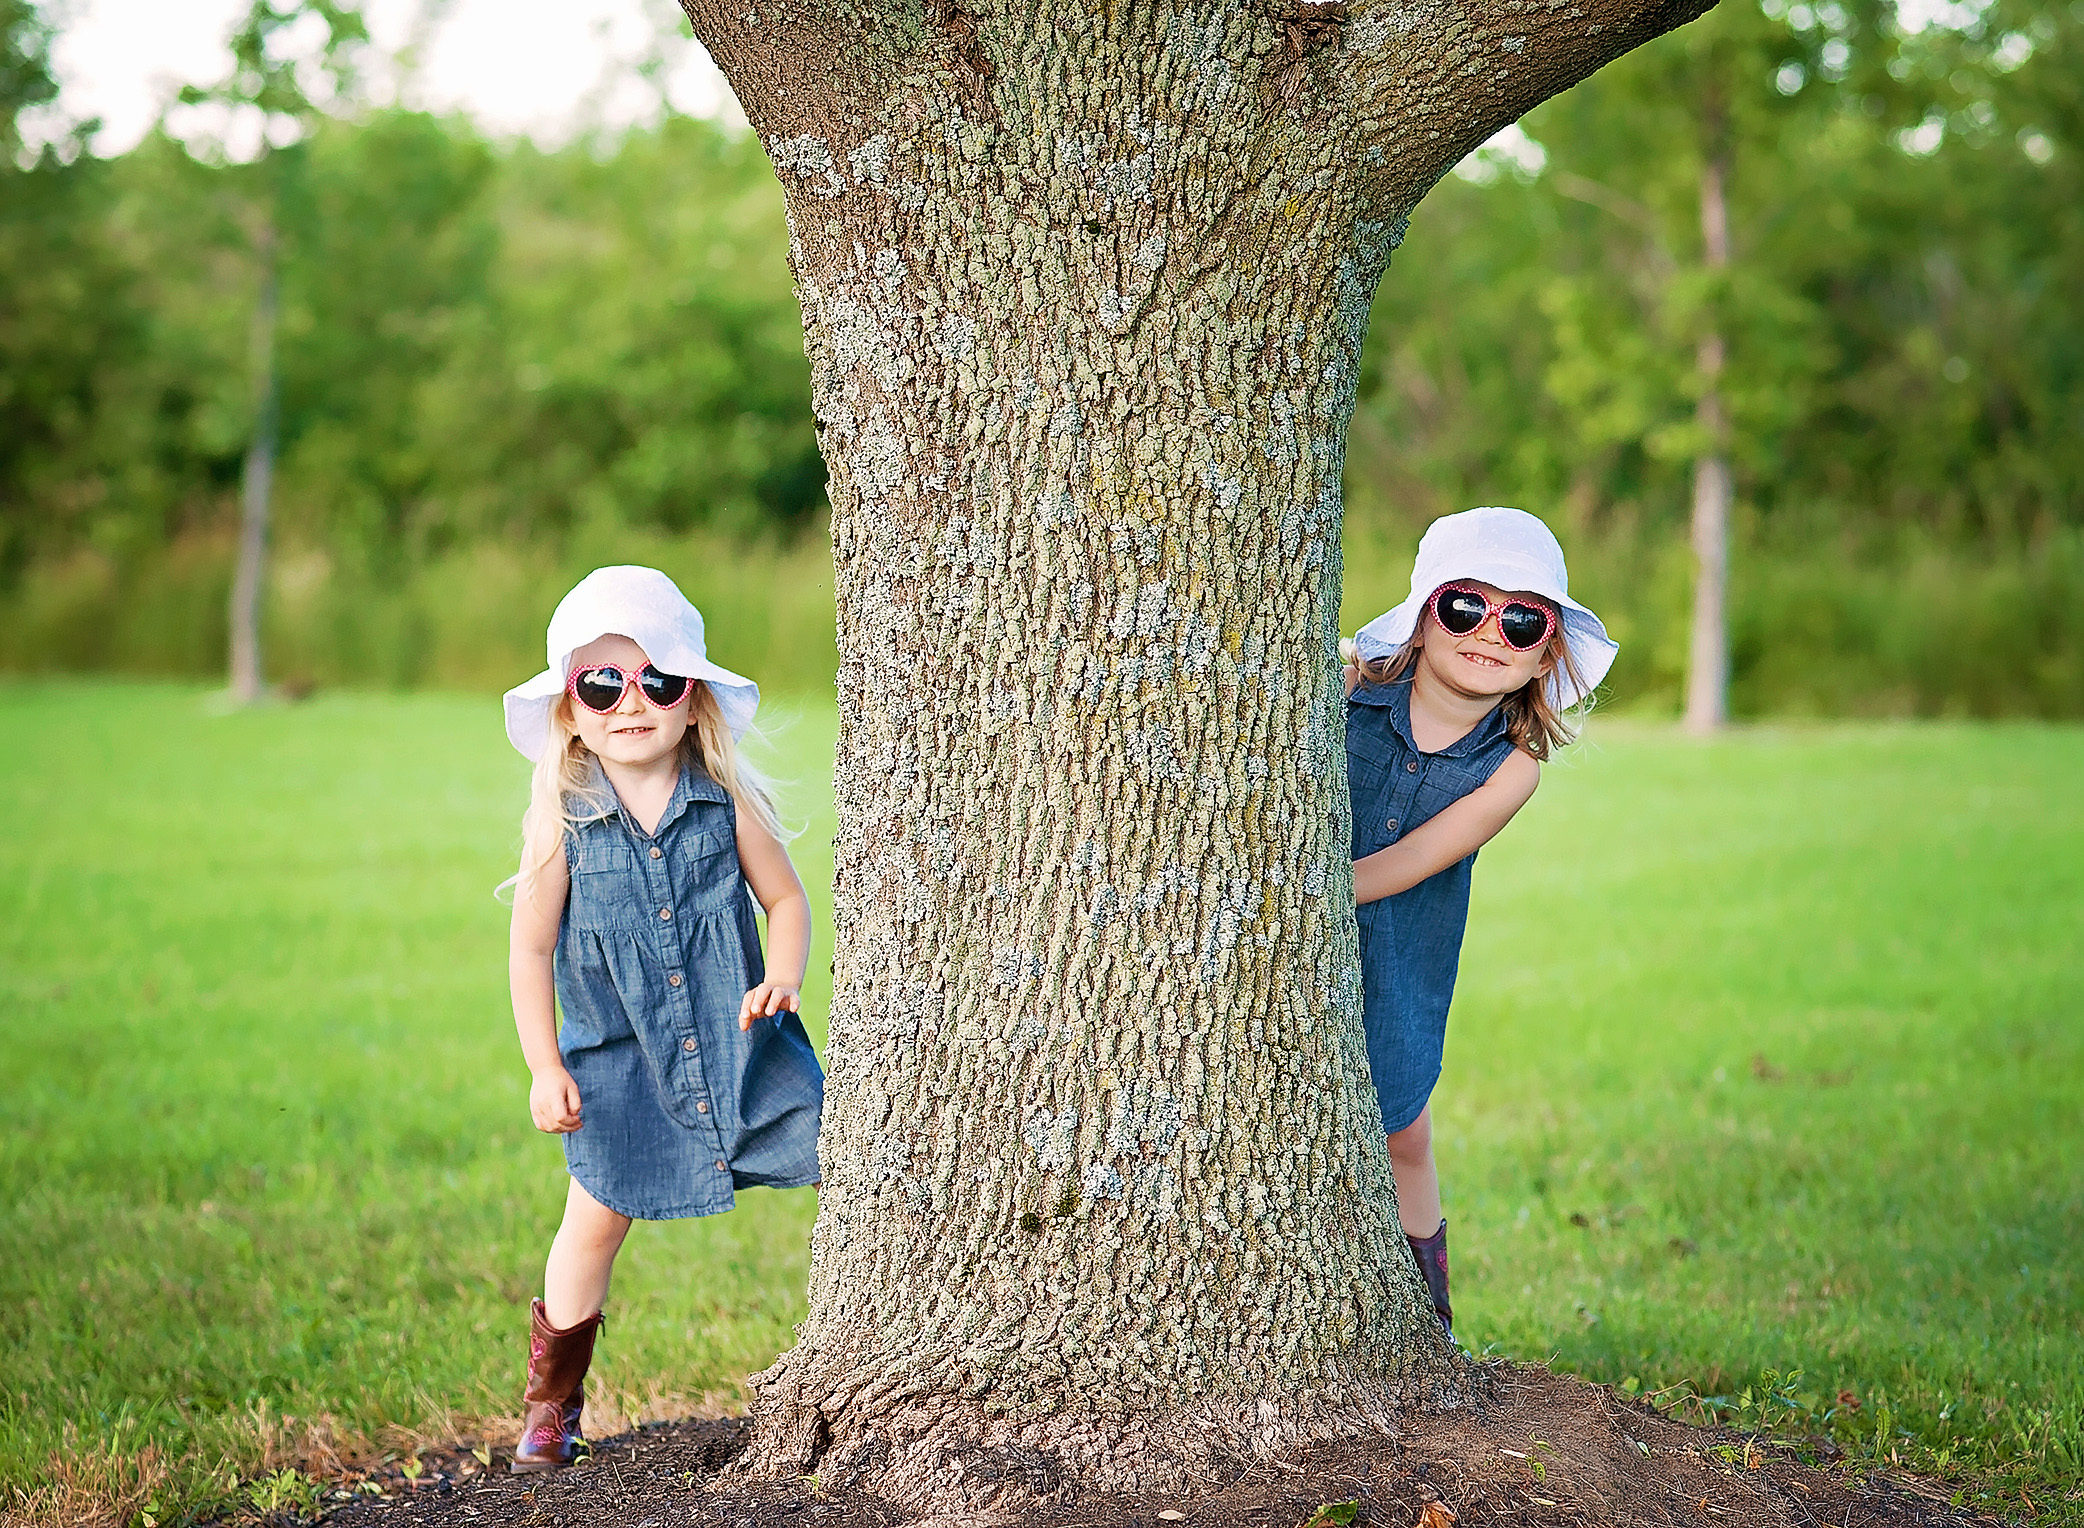 twin girls hiding behind a tree